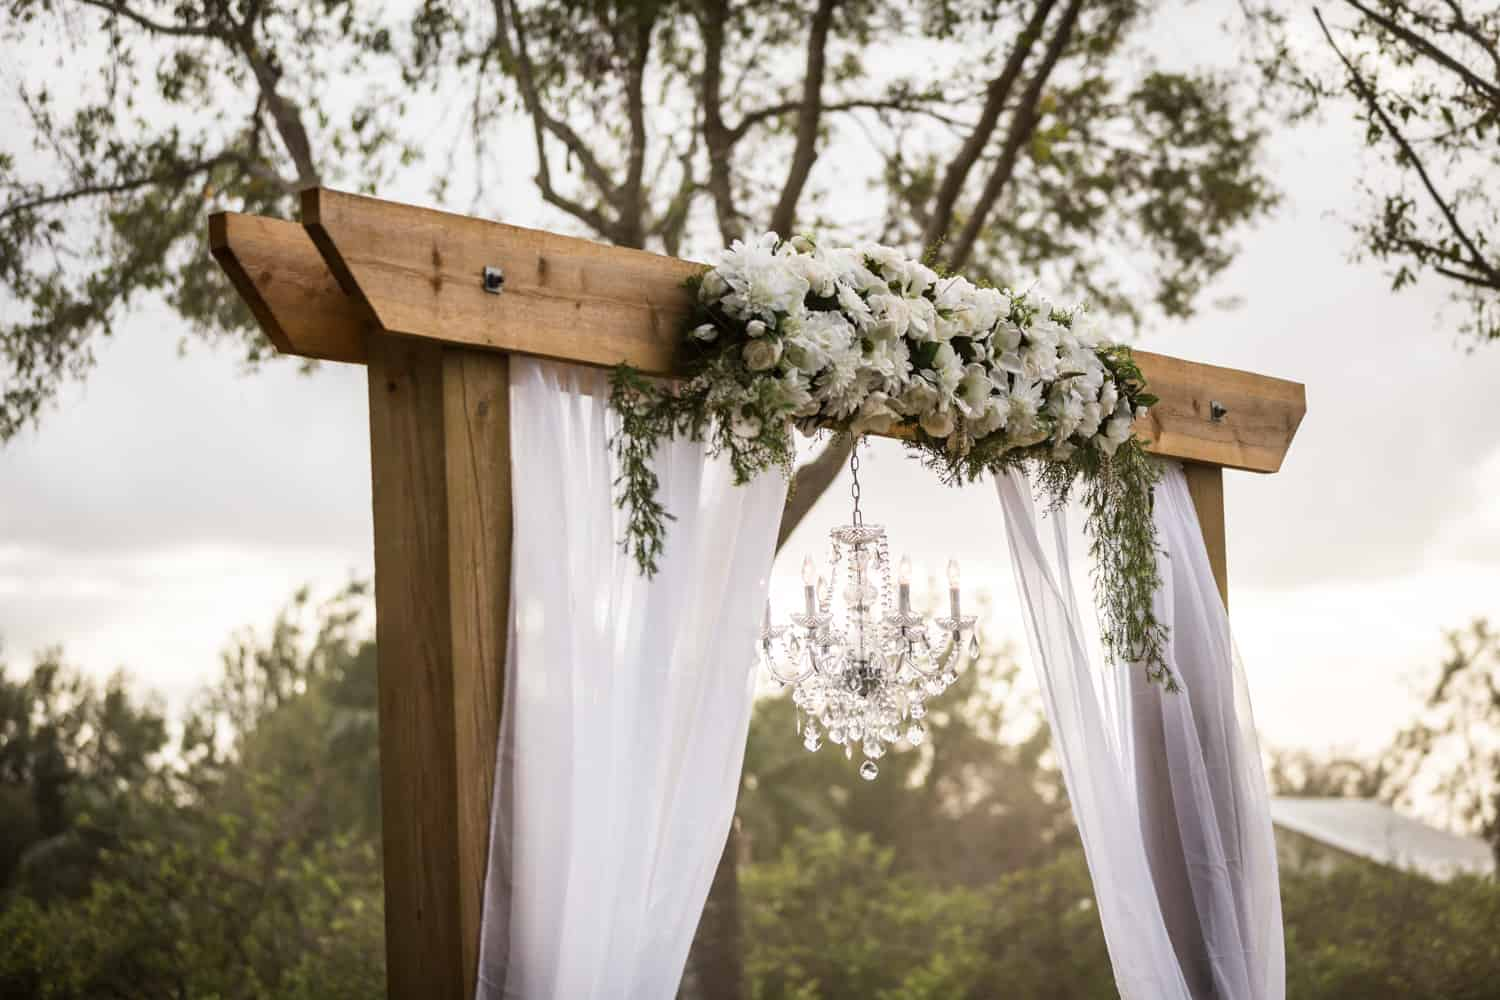 Wooden archway with white curtains, flowers, and a chandelier